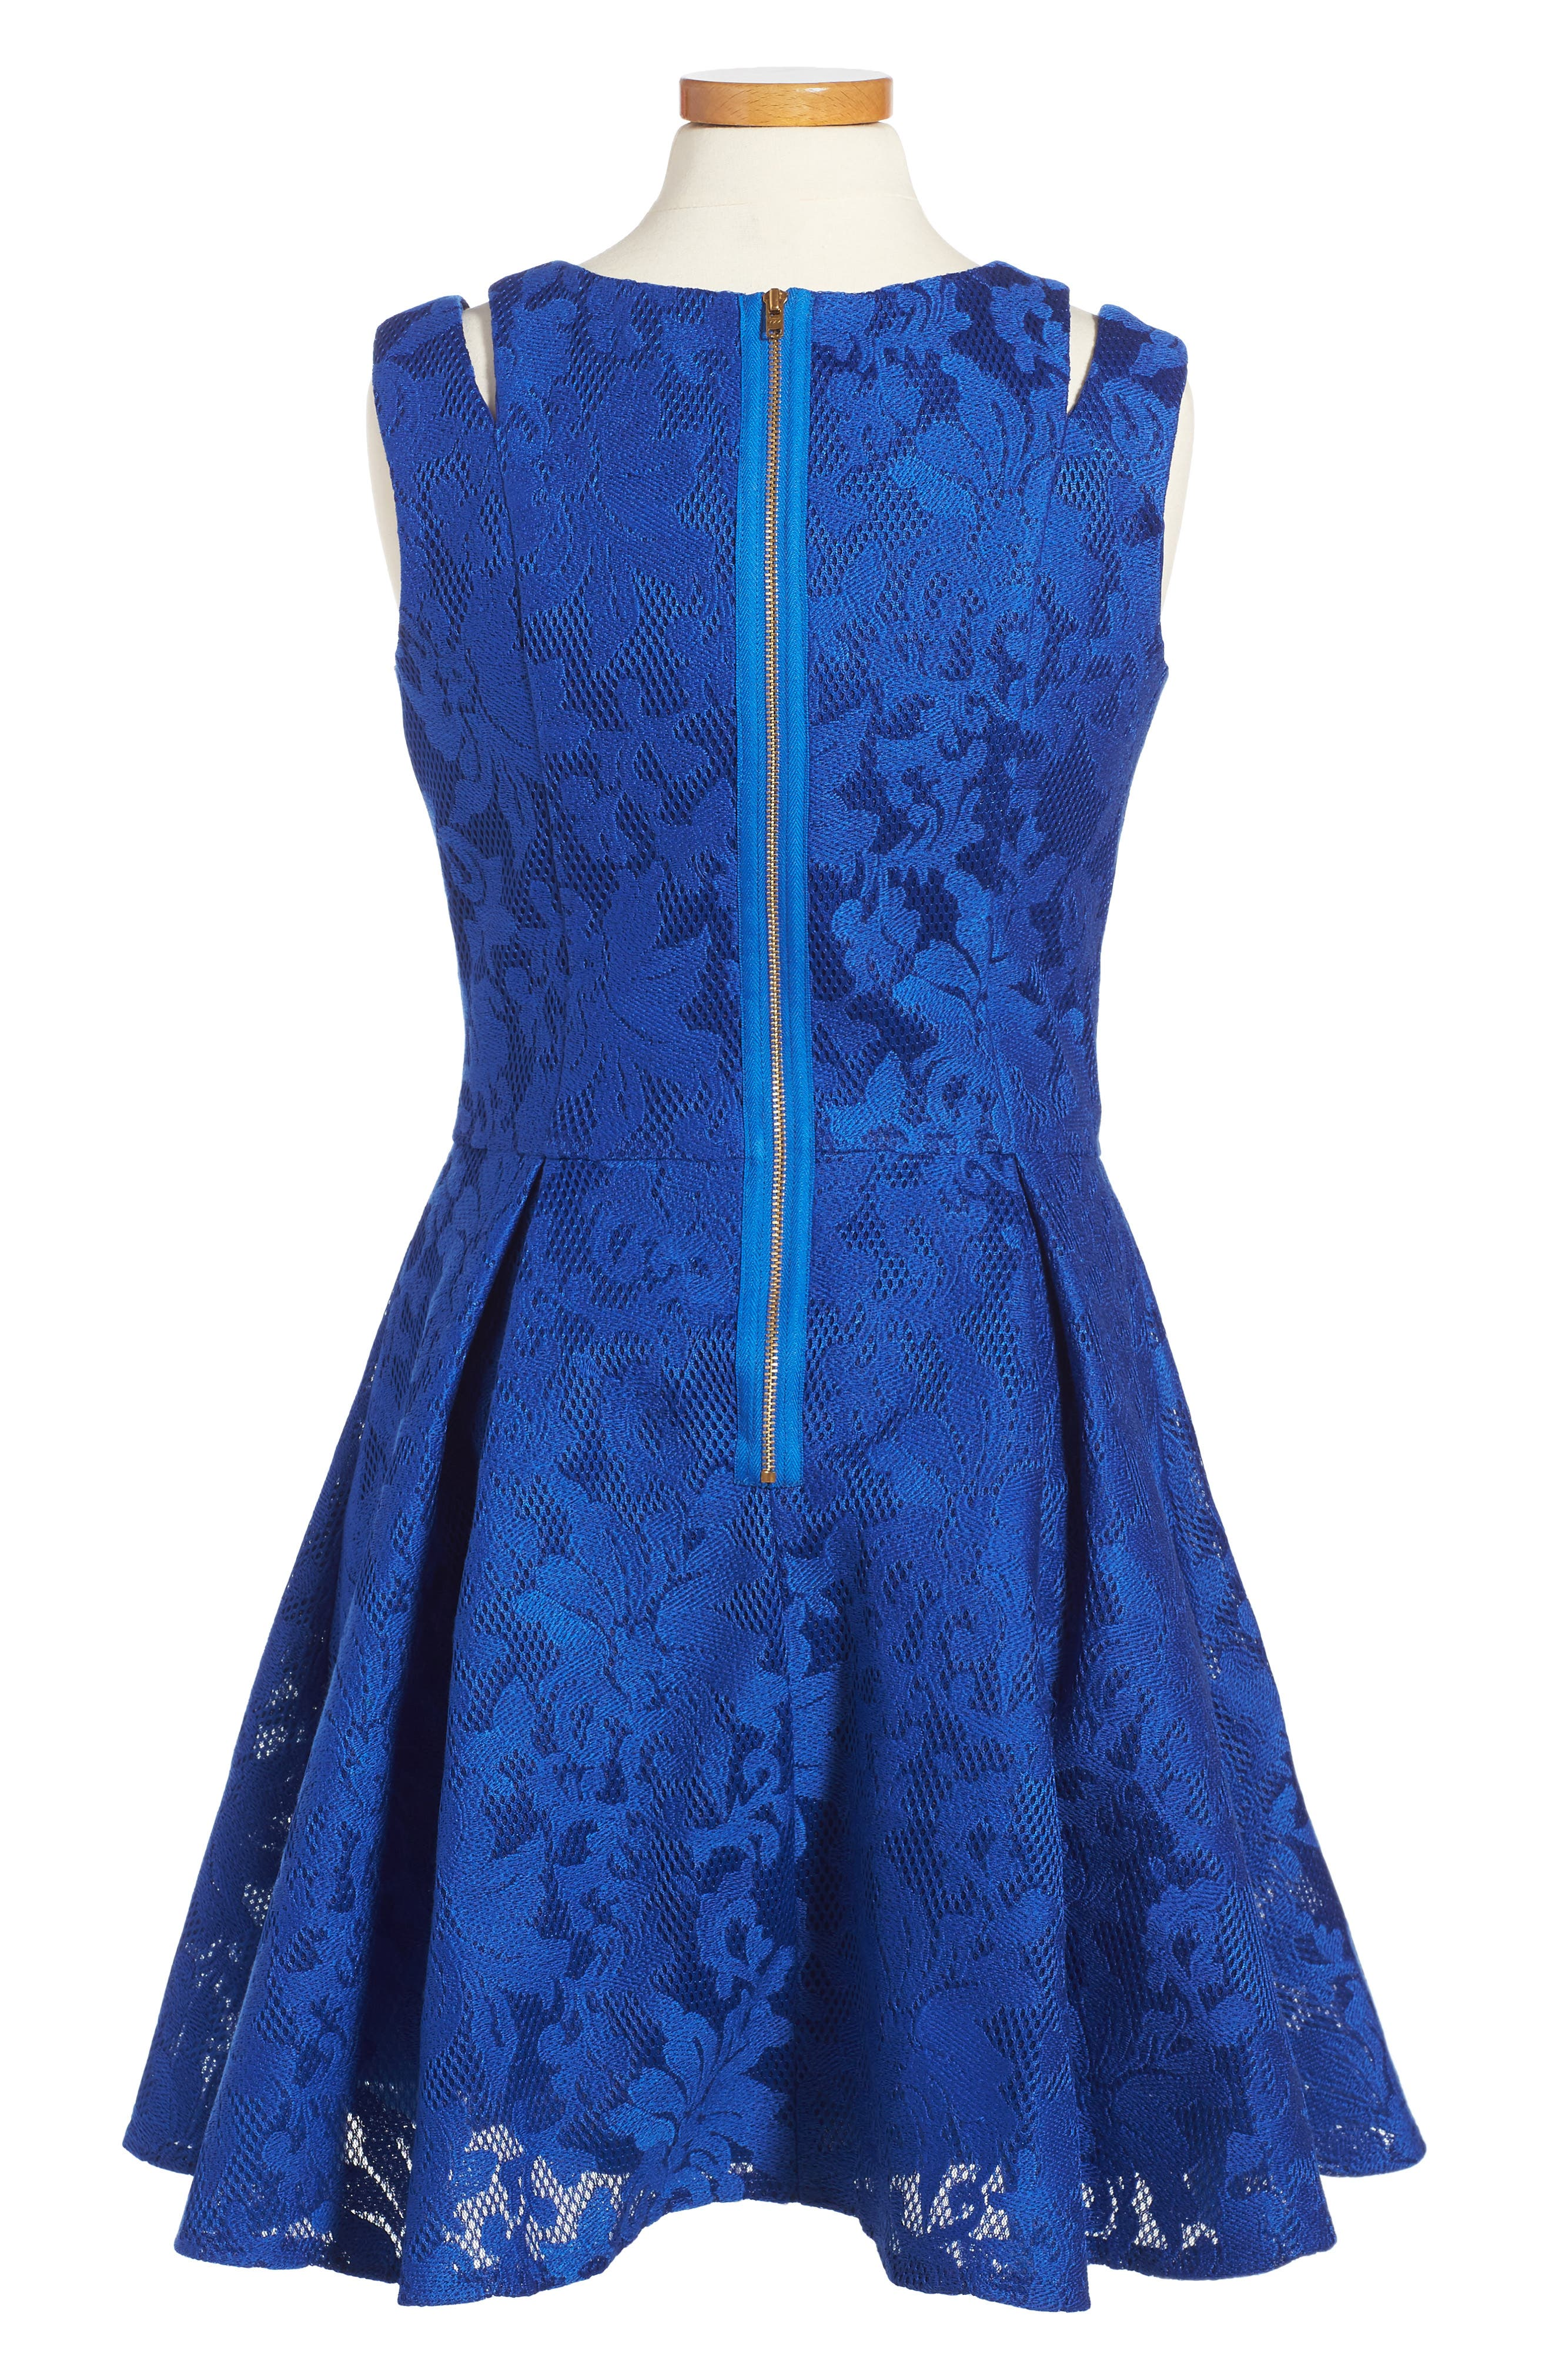 Embroidered Techno Dress,                             Alternate thumbnail 3, color,                             430